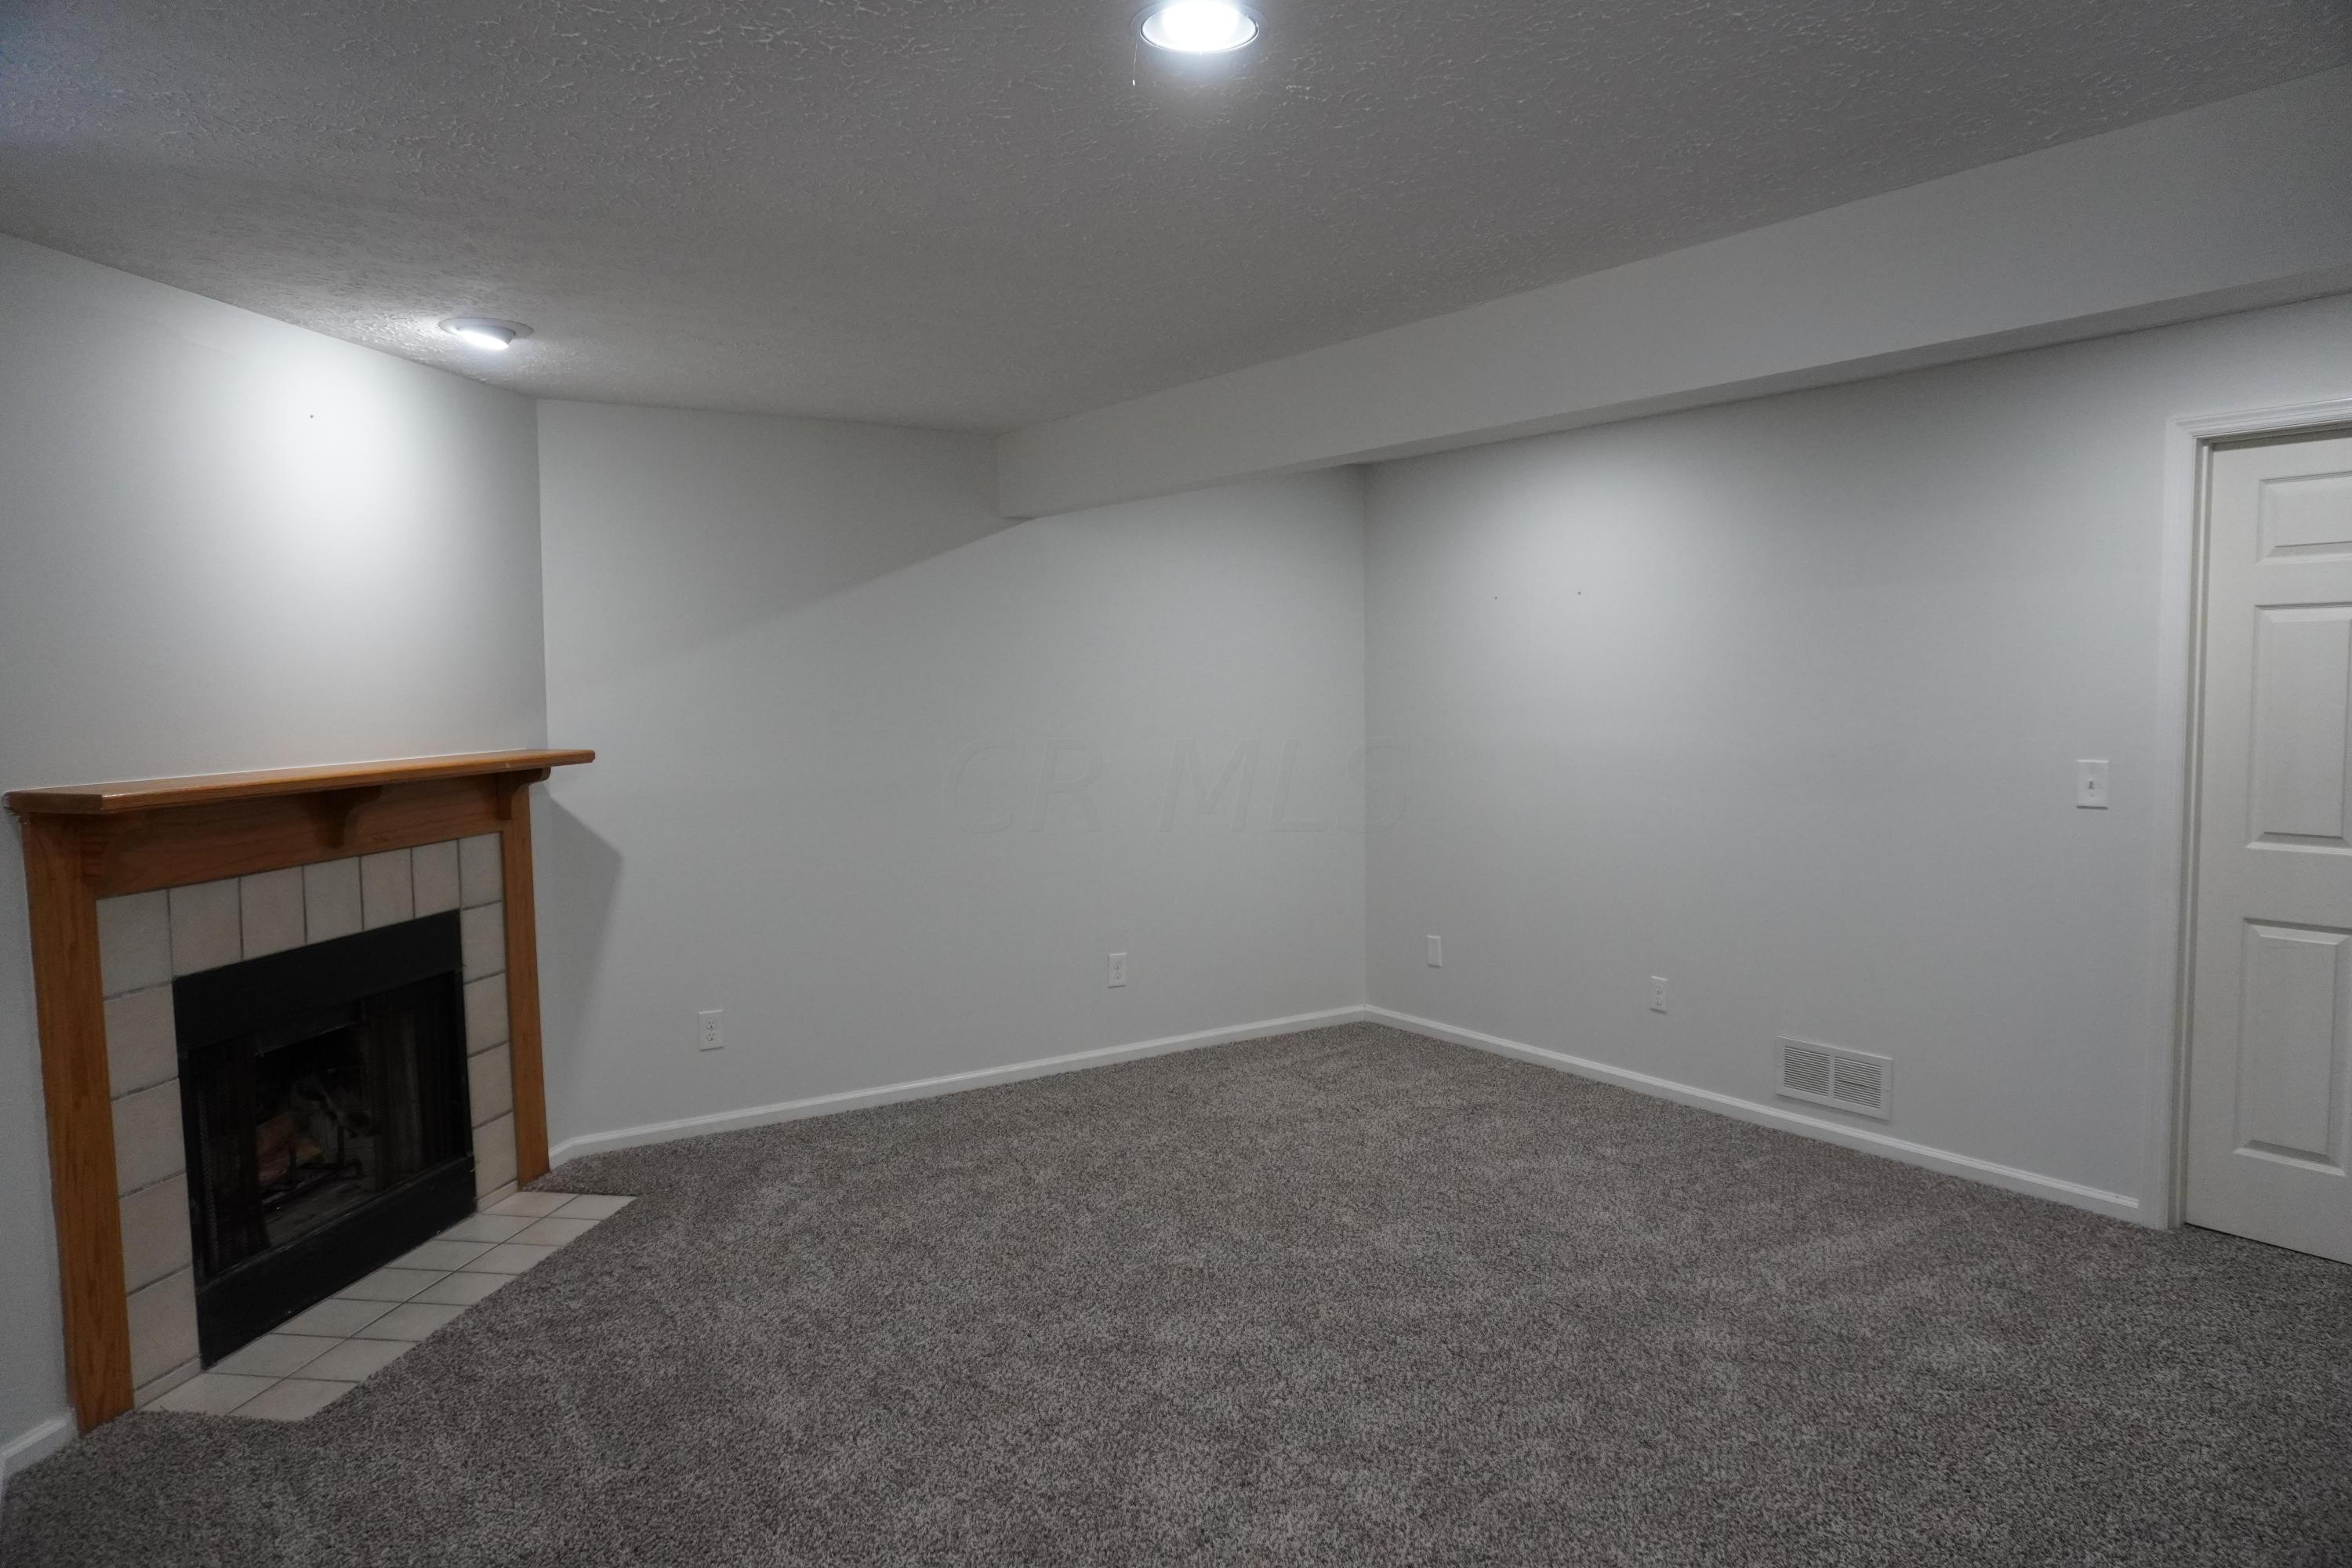 6328 Hyland Drive, Dublin, Ohio 43017, 2 Bedrooms Bedrooms, ,2 BathroomsBathrooms,Residential,For Sale,Hyland,220023722